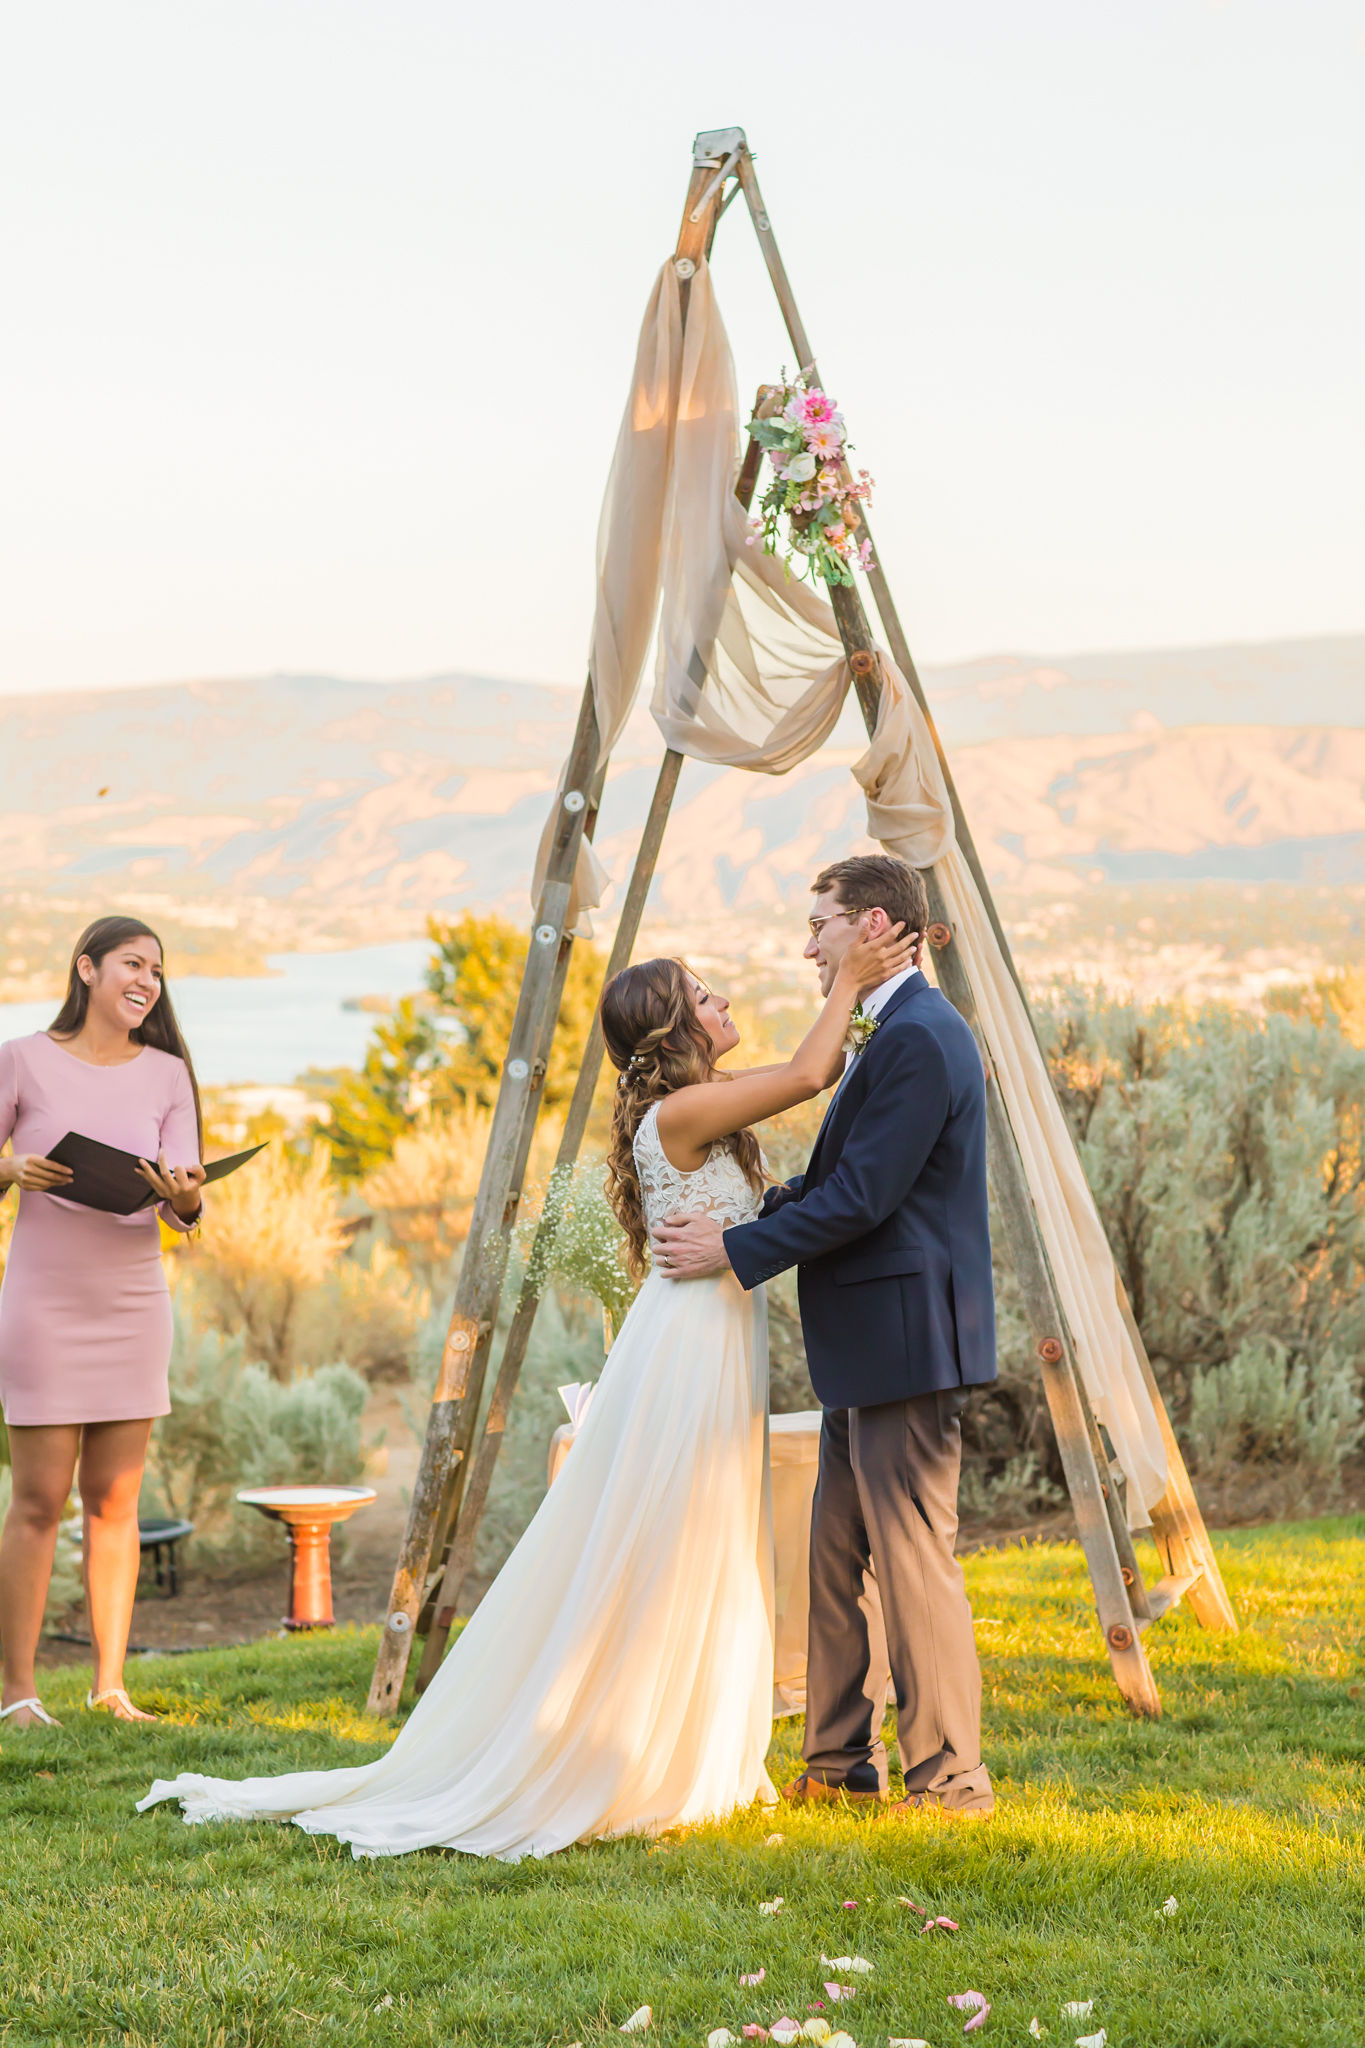 Bride and Groom at outdoor ceremony